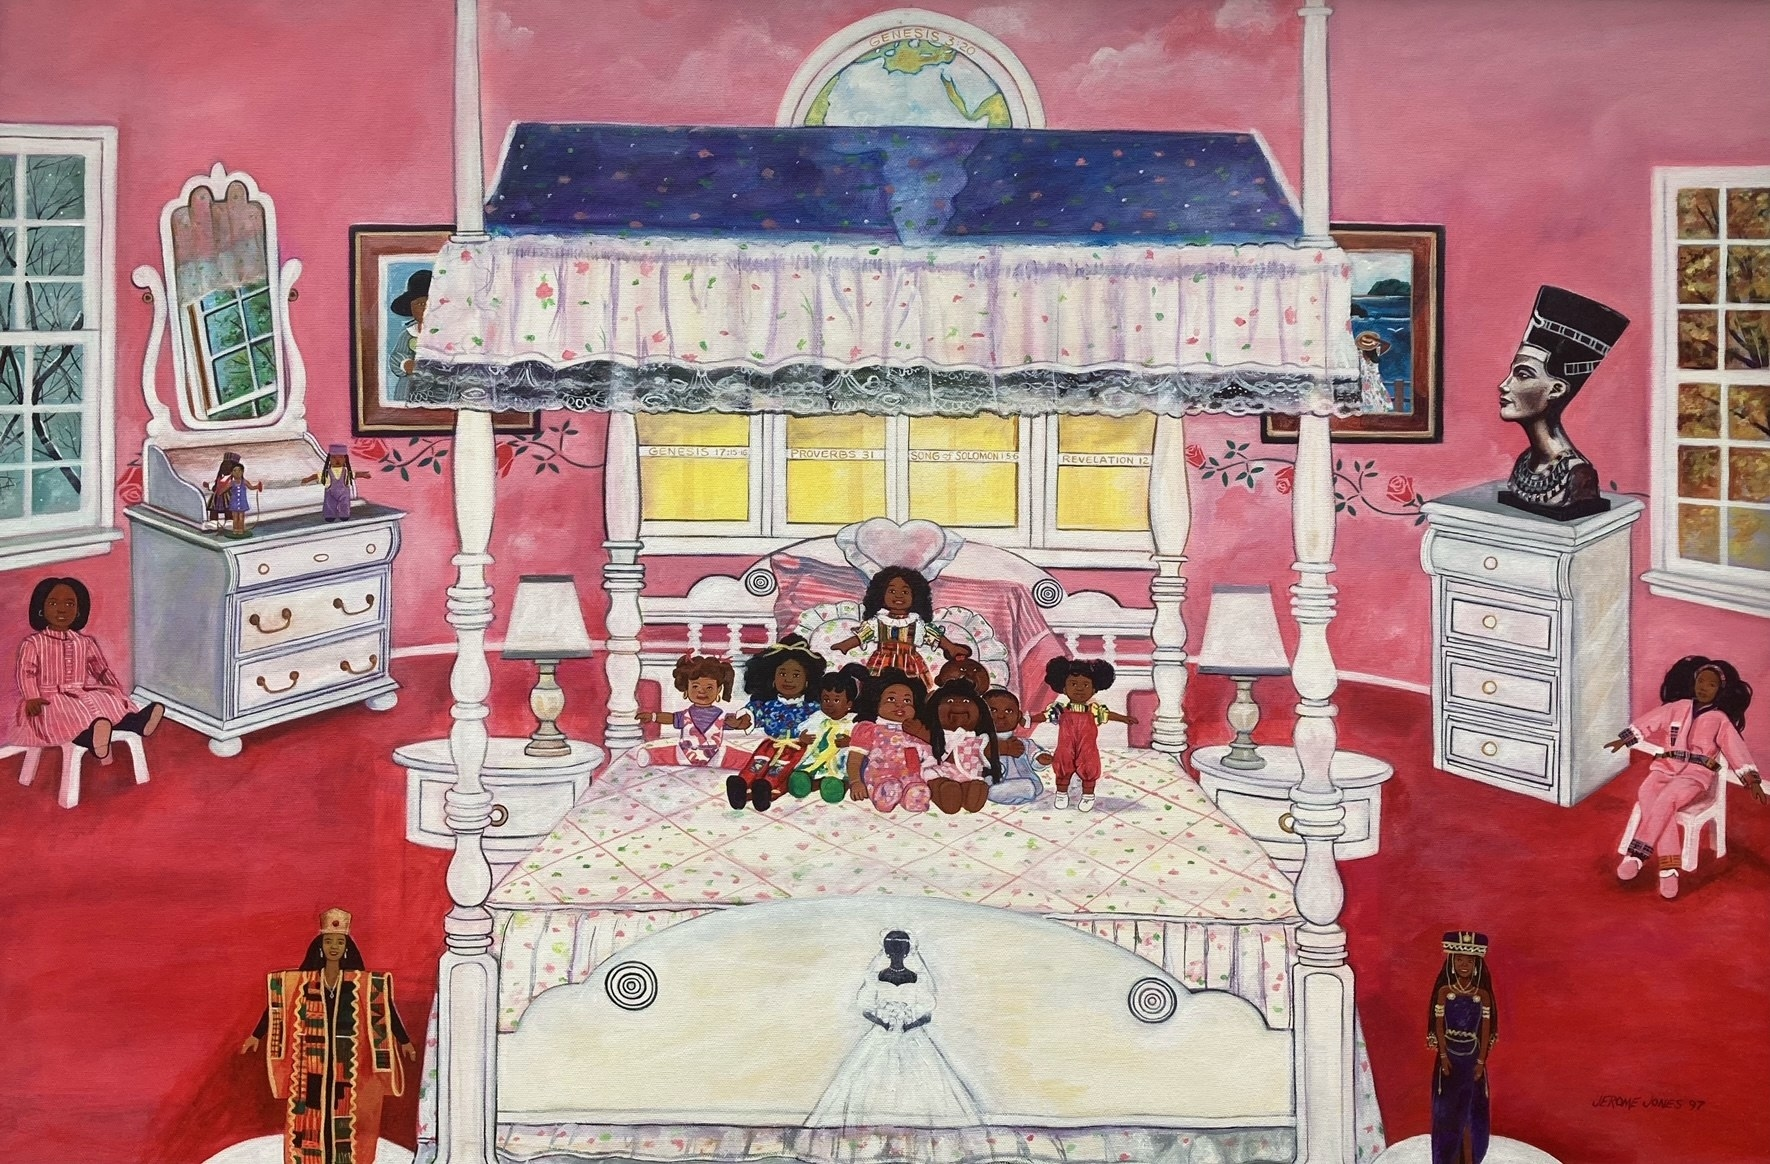 Painting of a girl's bedroom and a bed with Black dolls on top